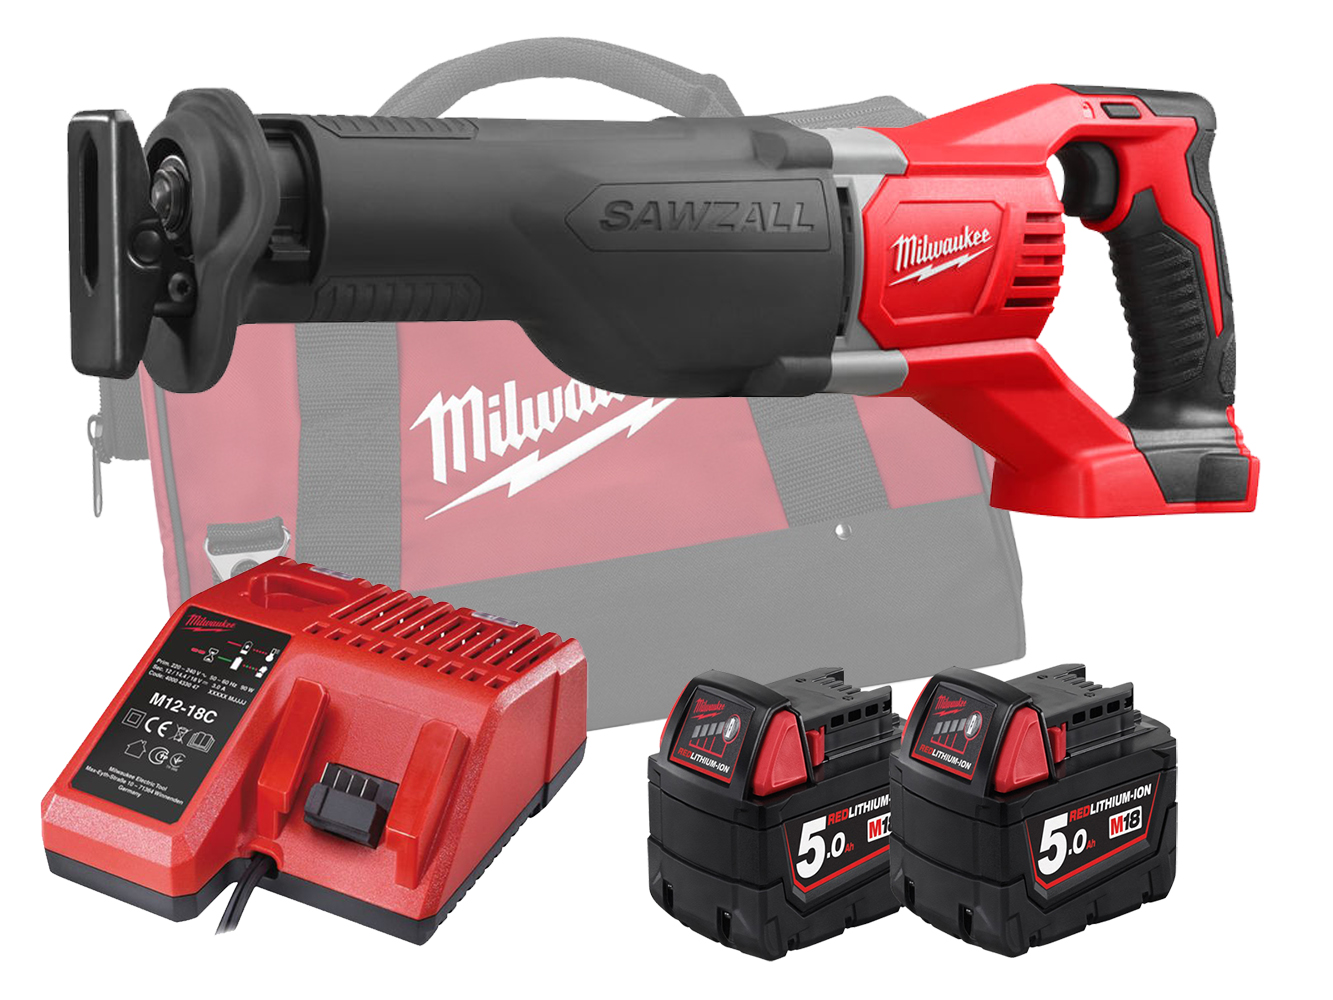 MILWAUKEE 18V BRUSHED RECIPROCATING SAW - M18BSX - 5.0AH PACK